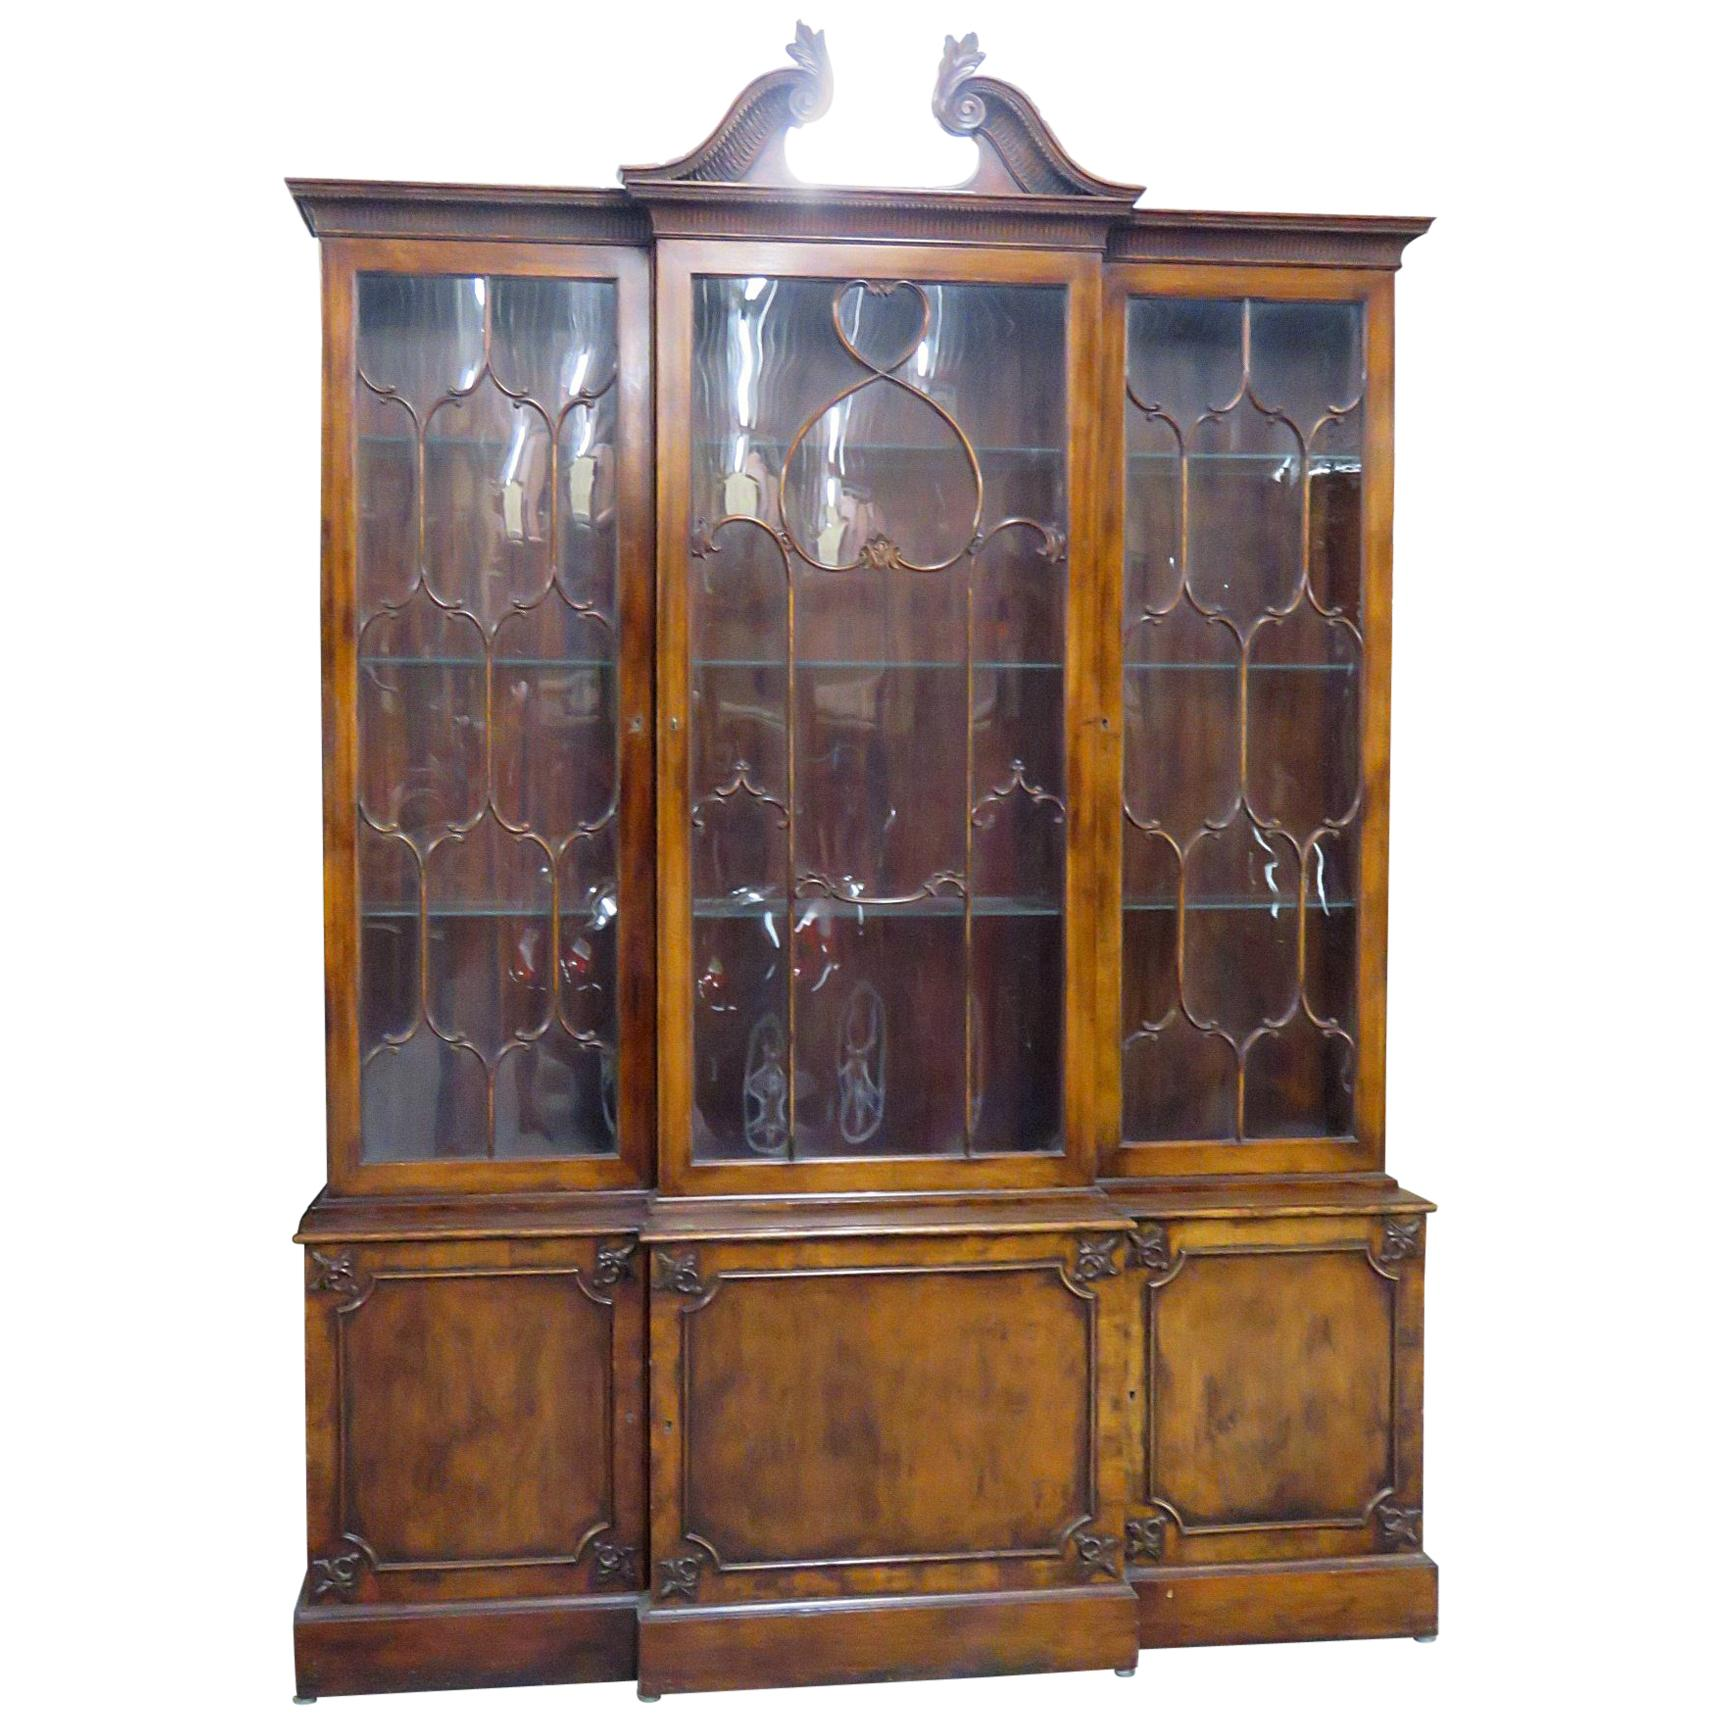 C1930s Era English Made Federal Style Mahogany Breakfront China Cabinet Bookcase